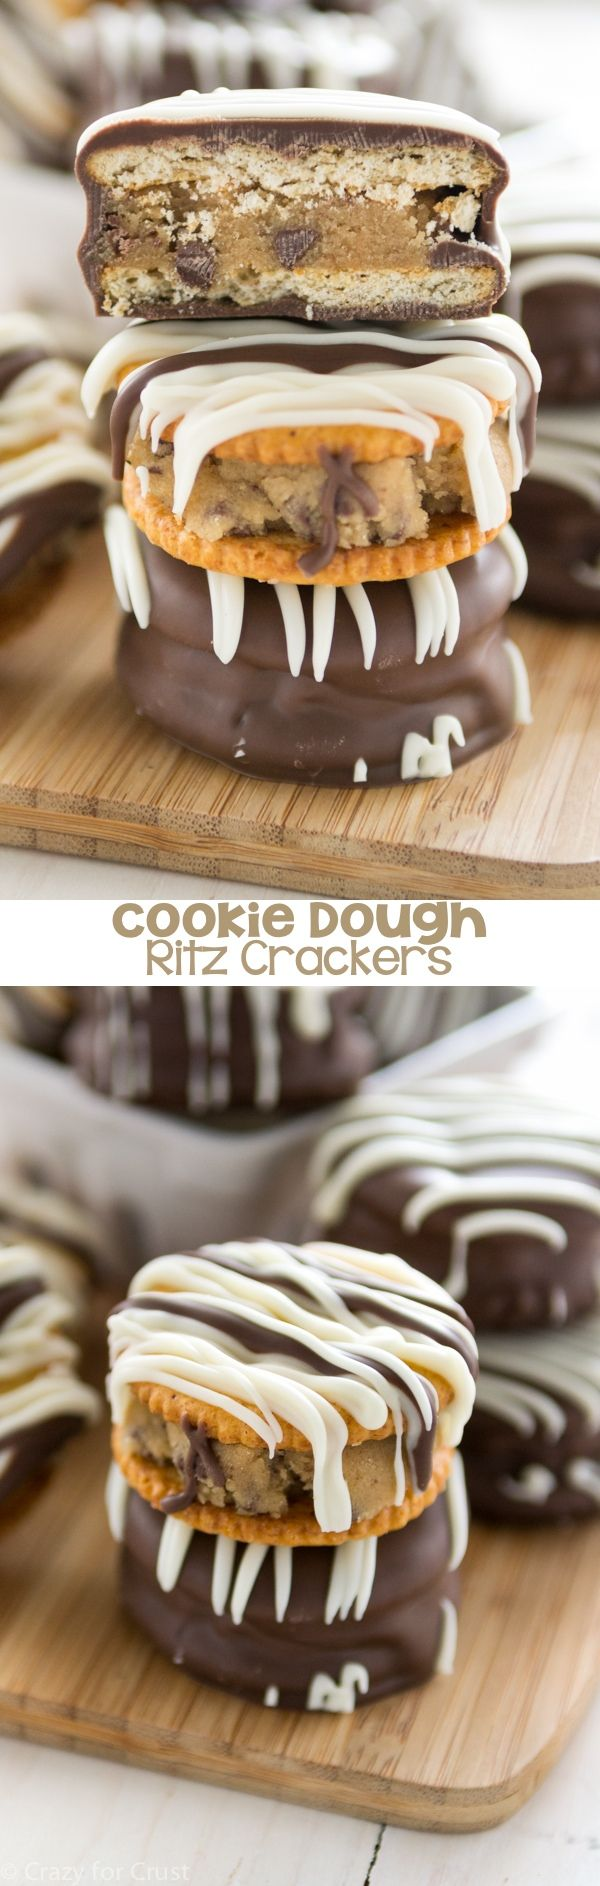 Cookie Dough Ritz Crackers have eggless chocolate chip cookie dough sandwiched between two Ritz crackers and then dipped in chocolate.